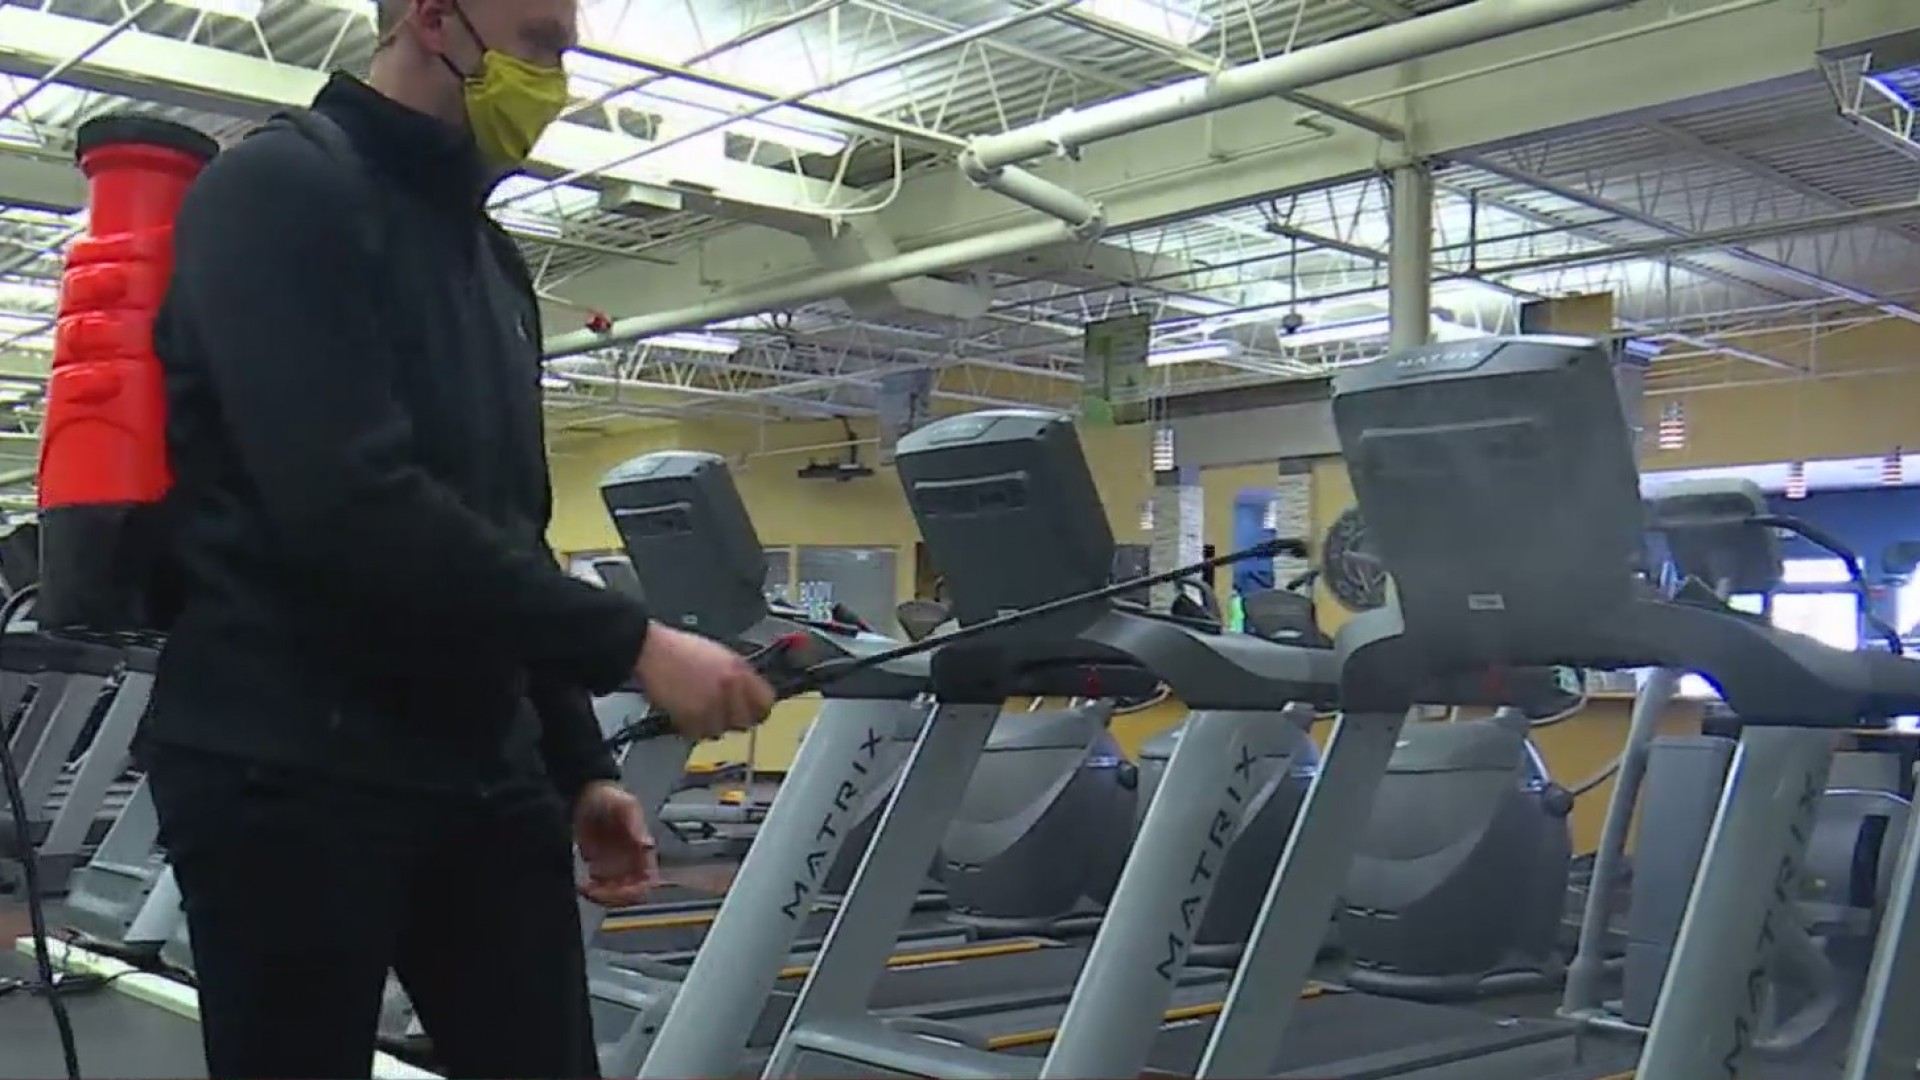 Gyms in Henrico County are set to reopen under Phase Two